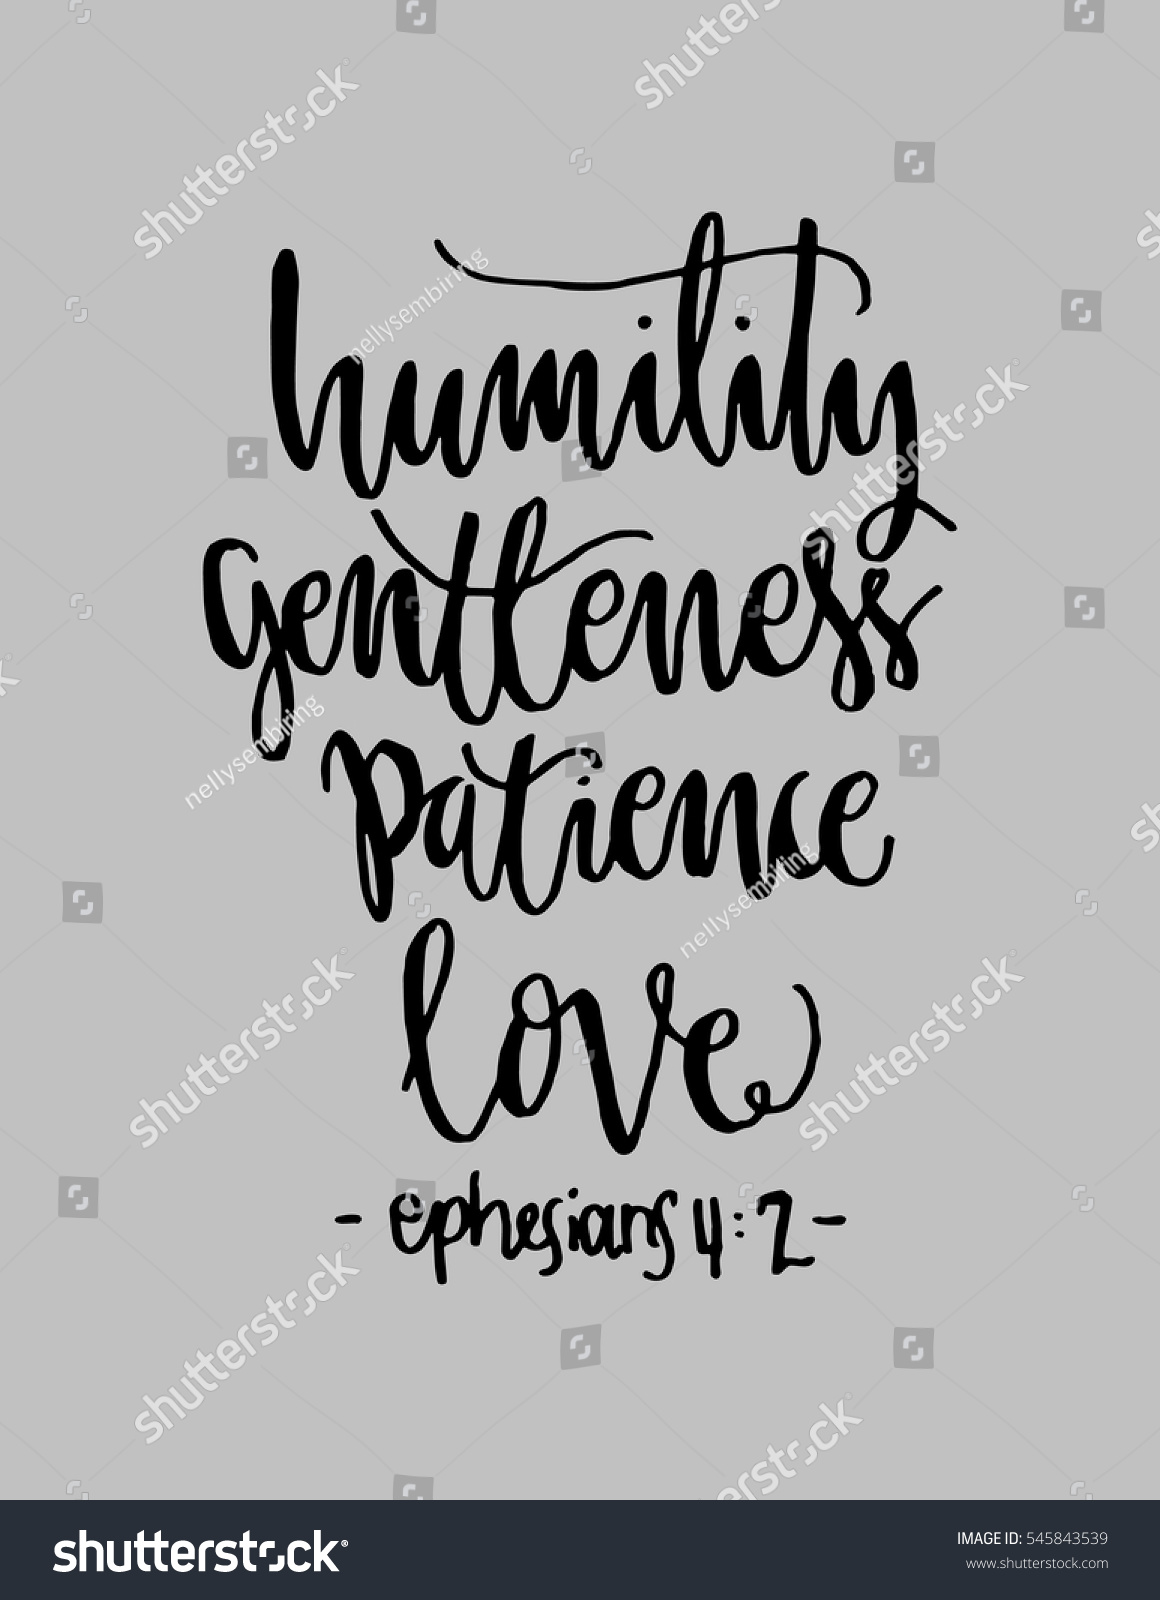 Humility gentlenesspatience love hand lettered quote stock